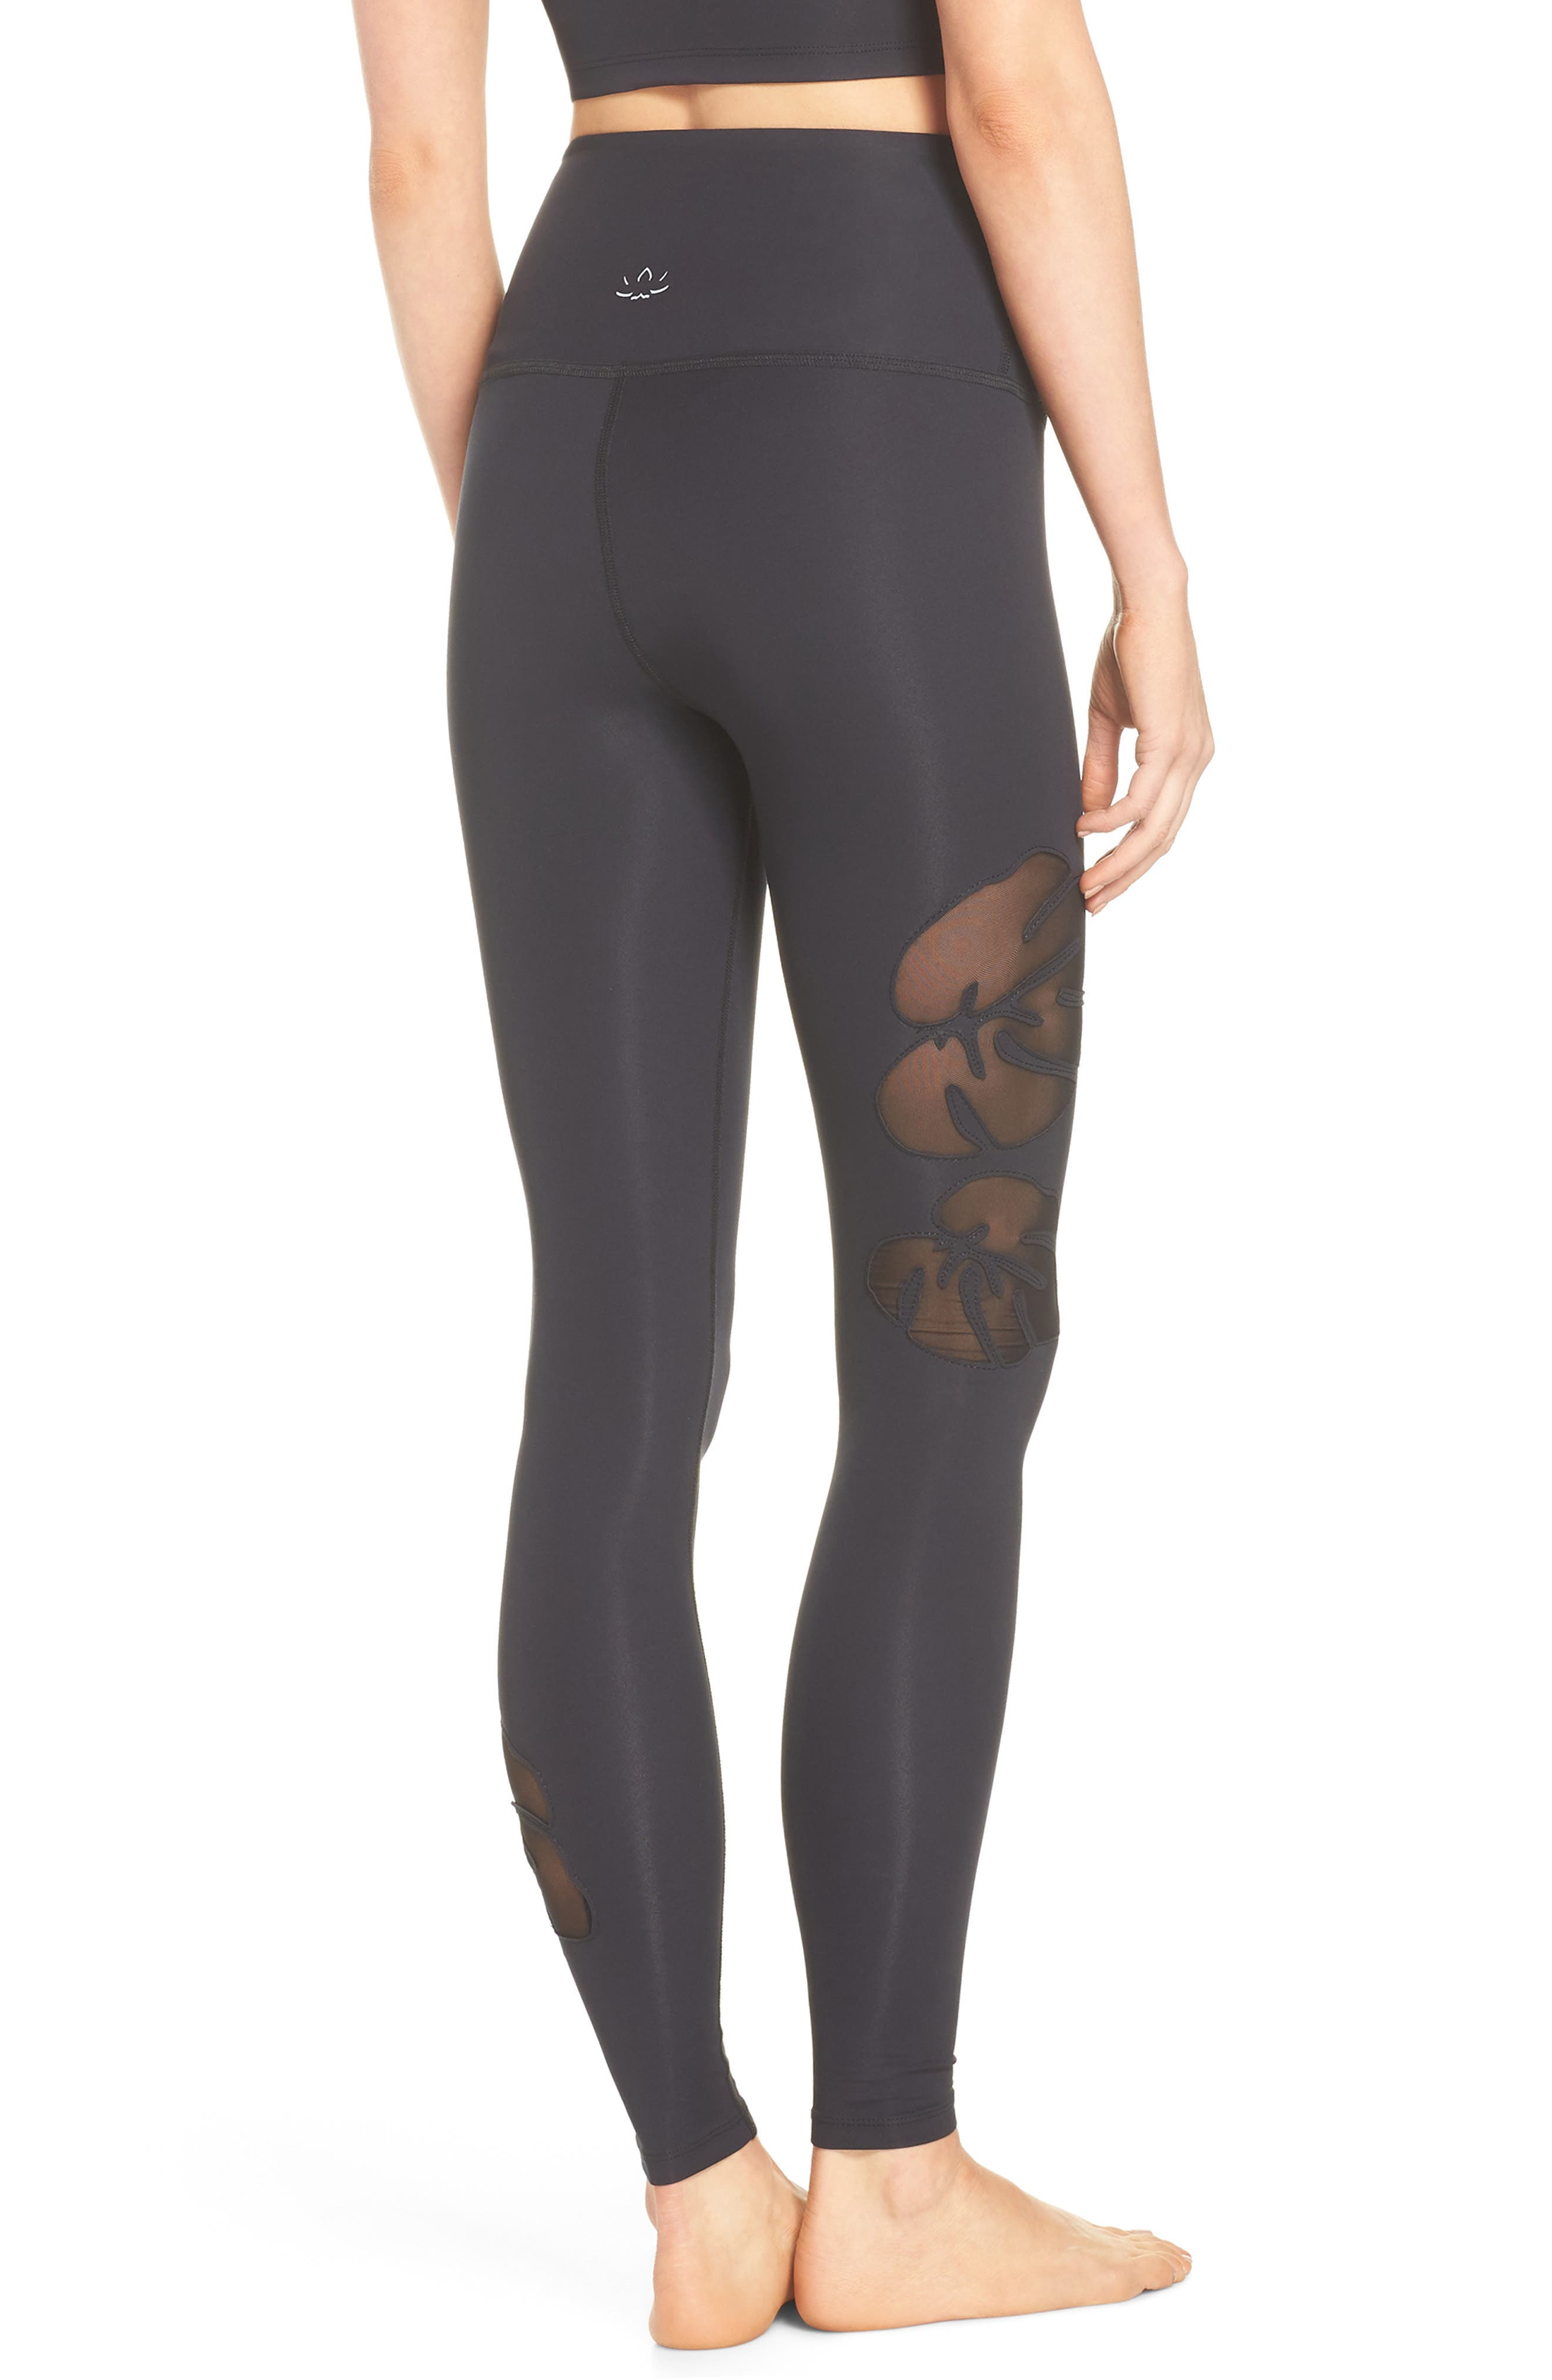 Take Leaf High Waist Leggings,                             Alternate thumbnail 2, color,                             002